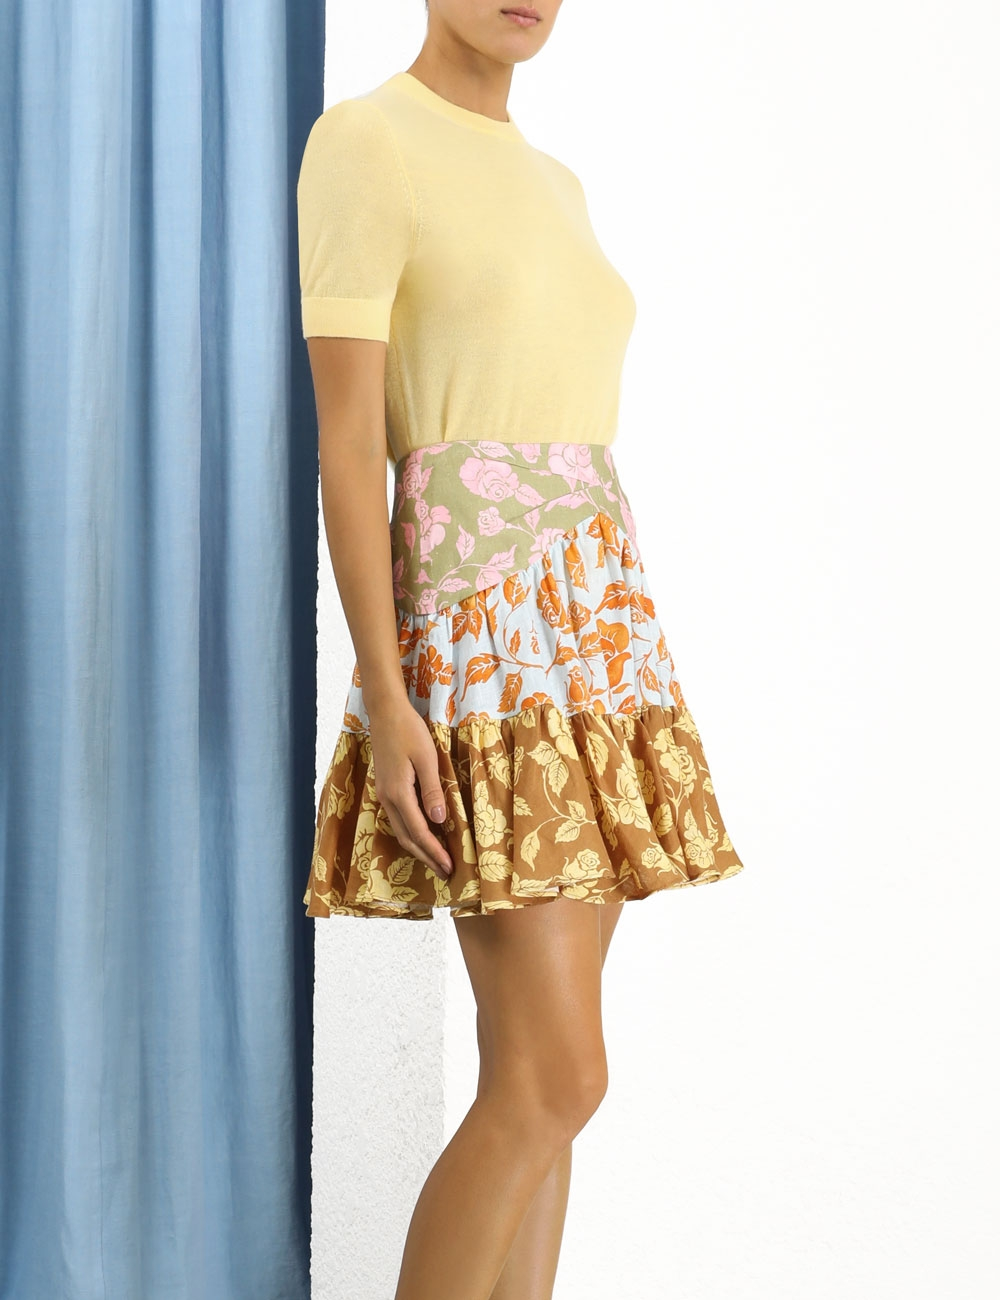 The Lovestruck Flip Skirt